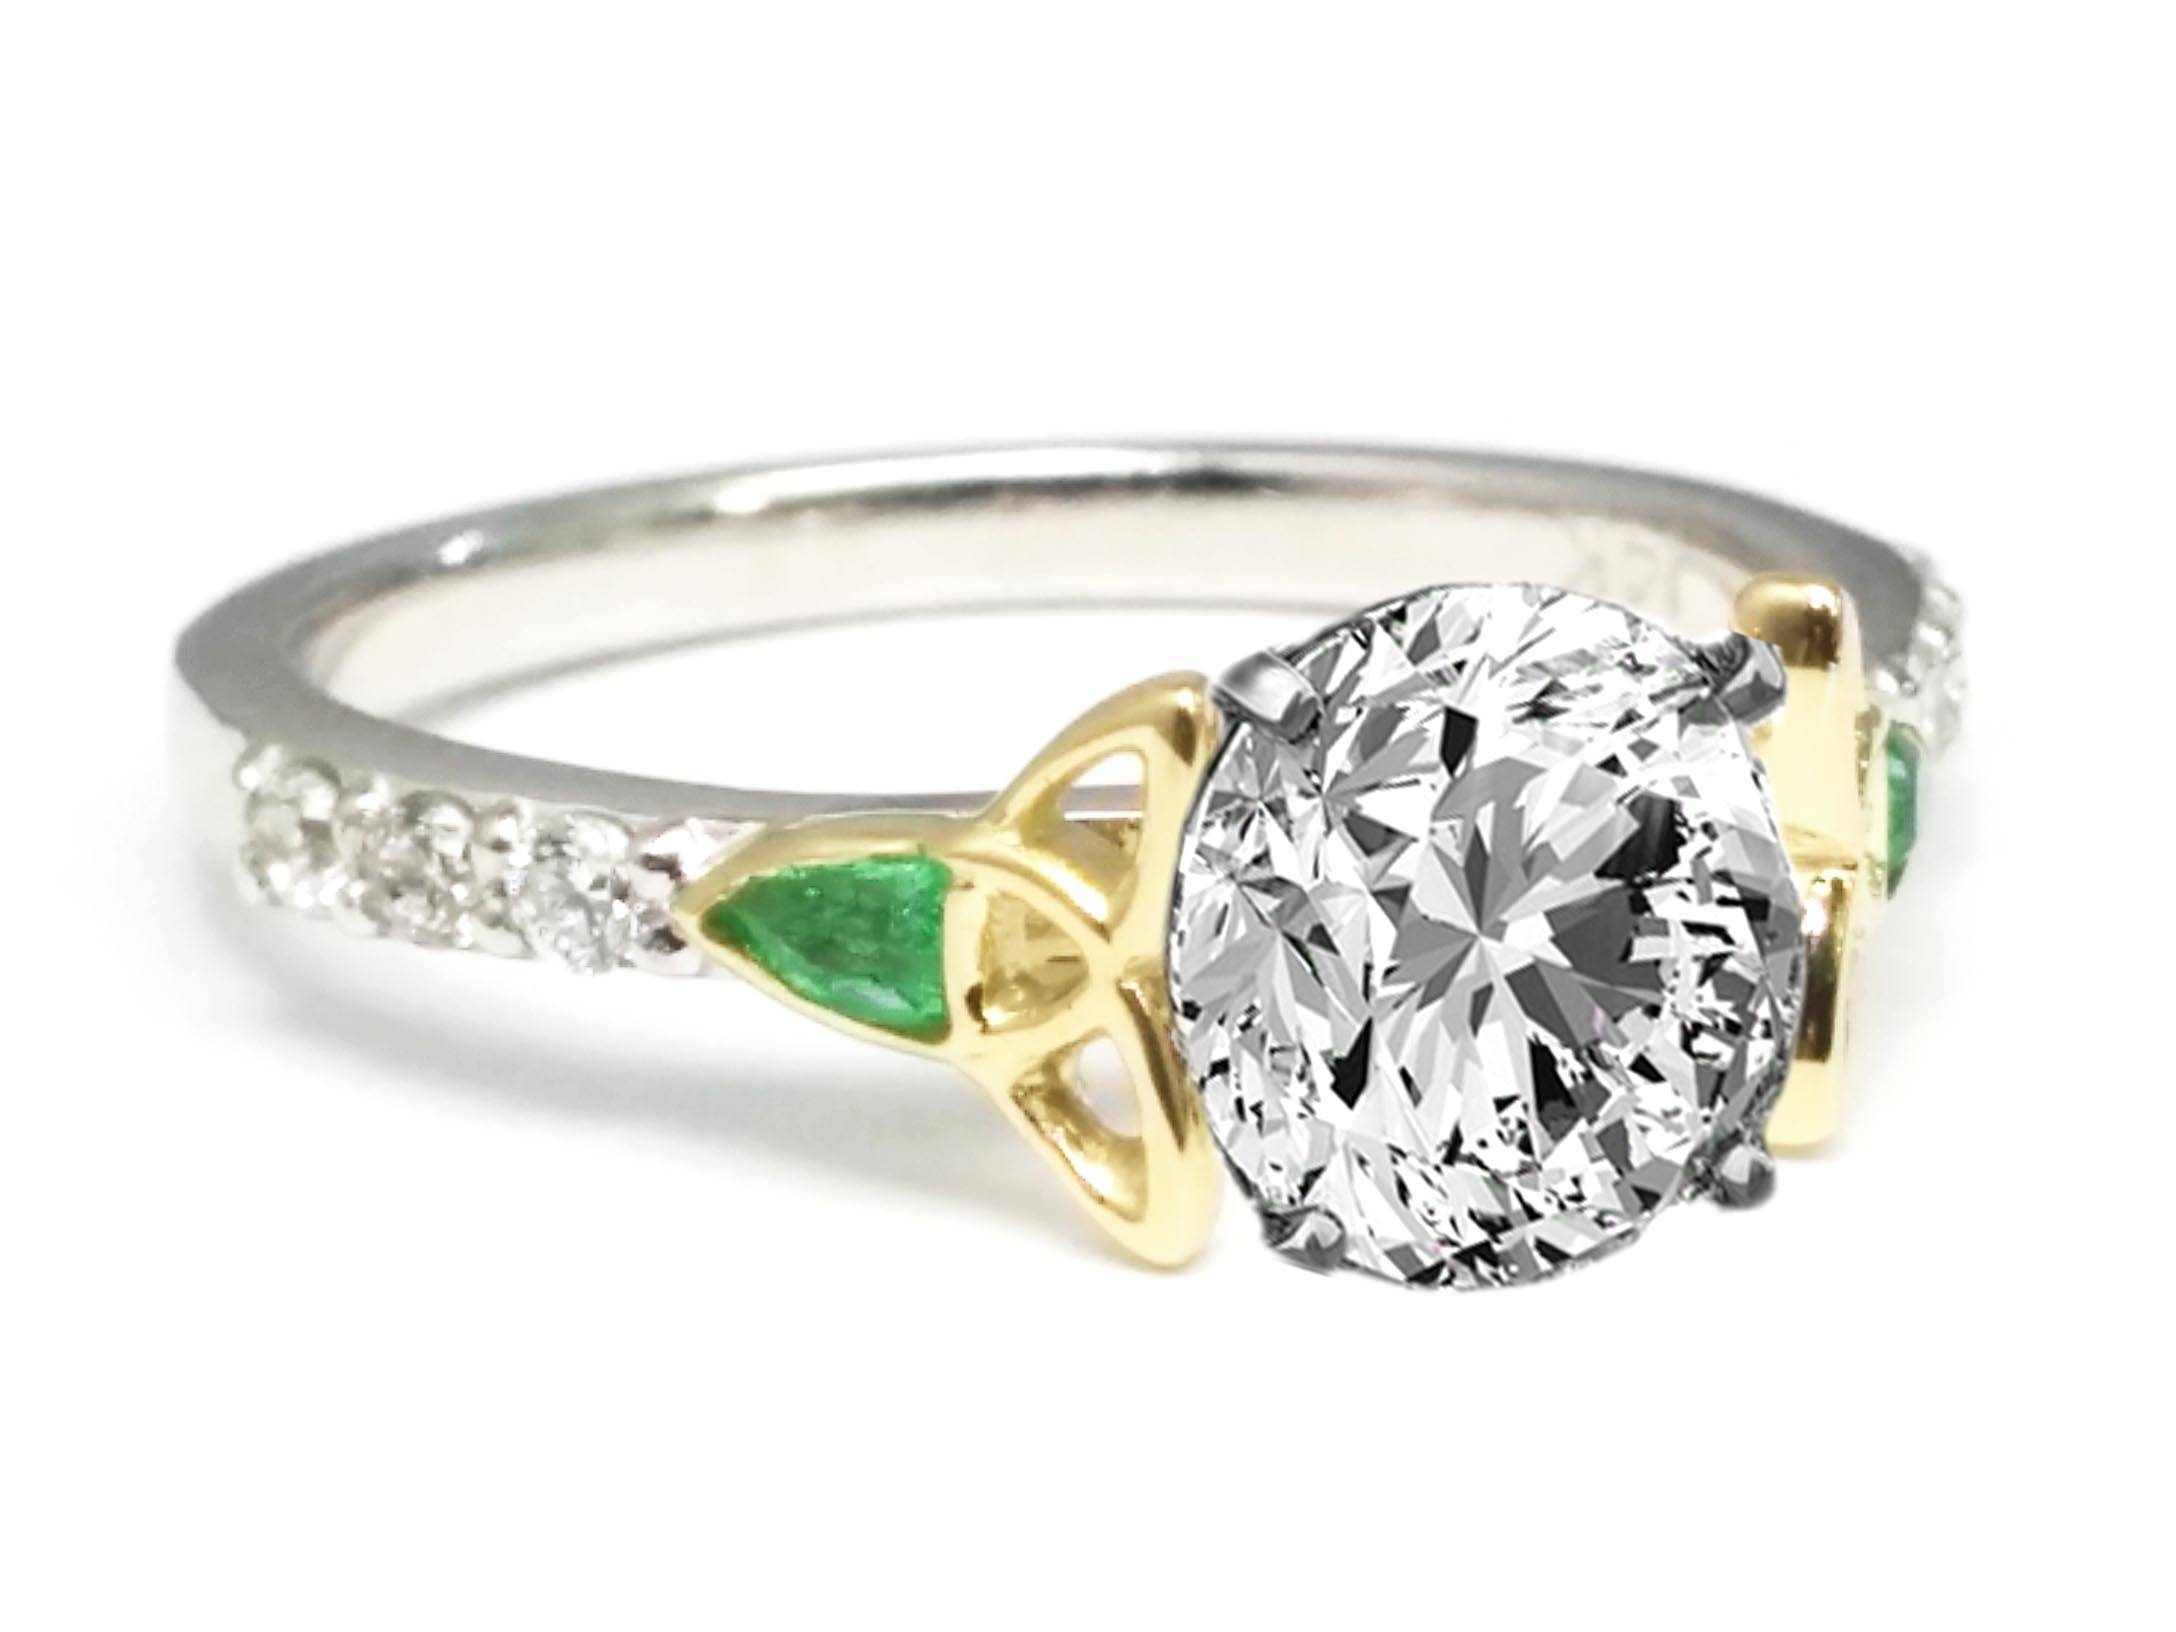 Celtic – Engagement Rings From Mdc Diamonds Nyc Within Celtic Engagement Rings Canada (View 6 of 15)